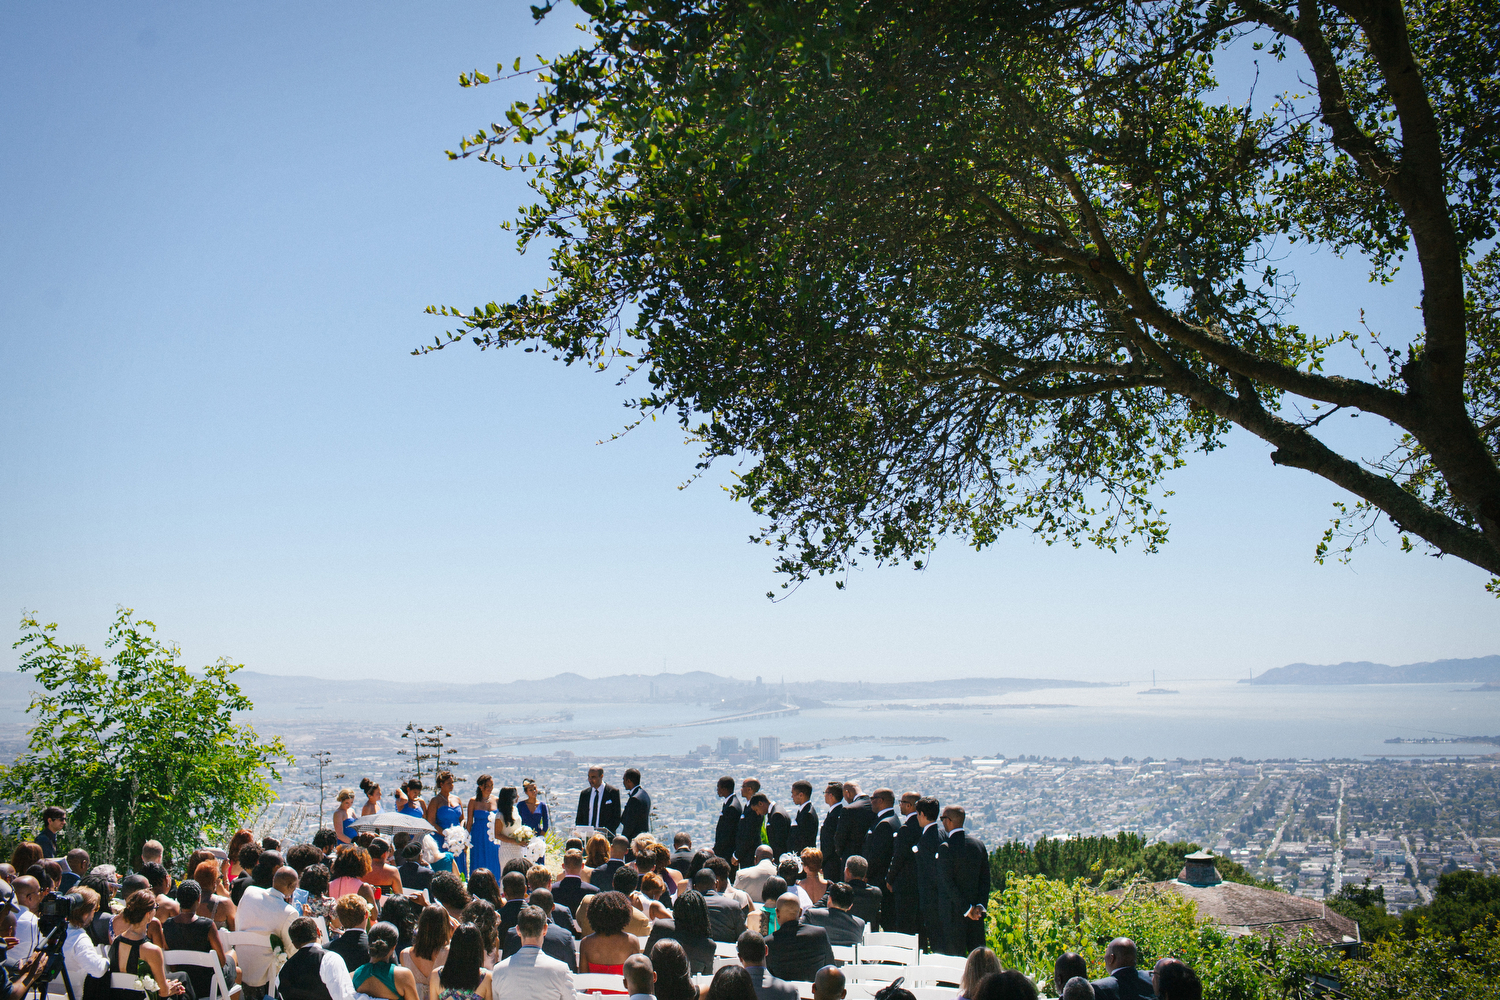 Otilia and Andrew's wedding ceremony overlooking the Bay Area in the Berkeley hills.